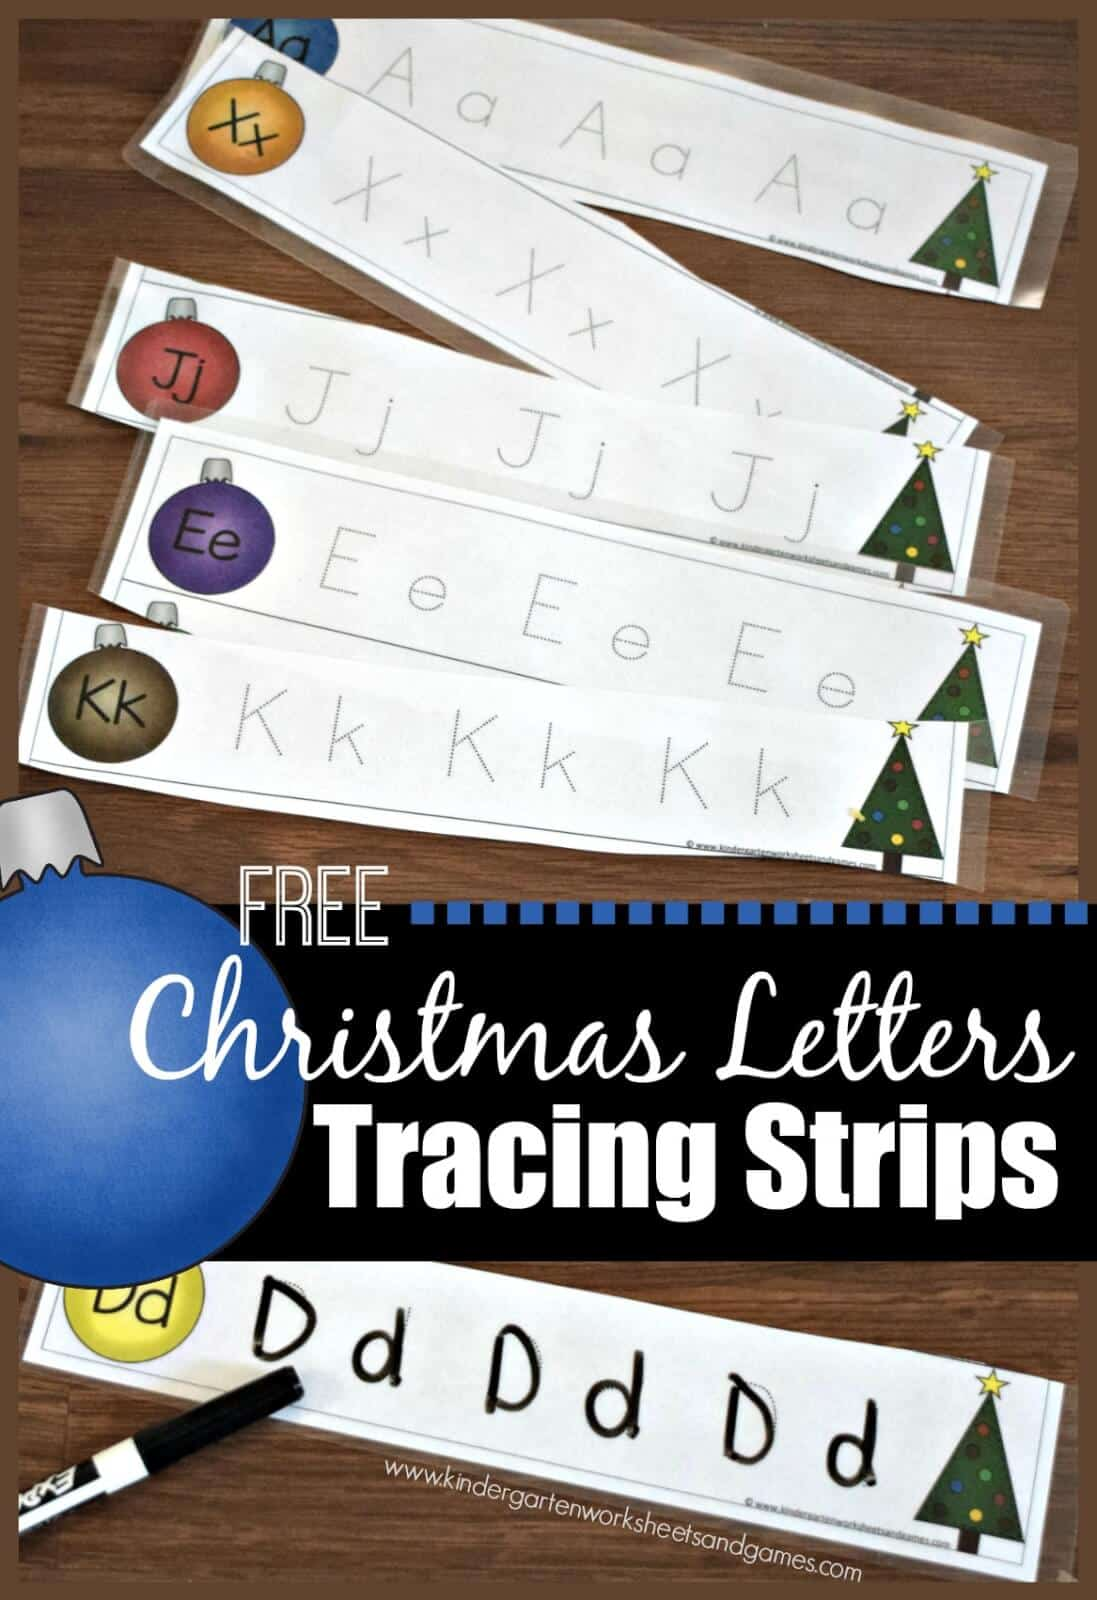 Christmas Letter Tracing Strips Kindergarten Worksheets And Games